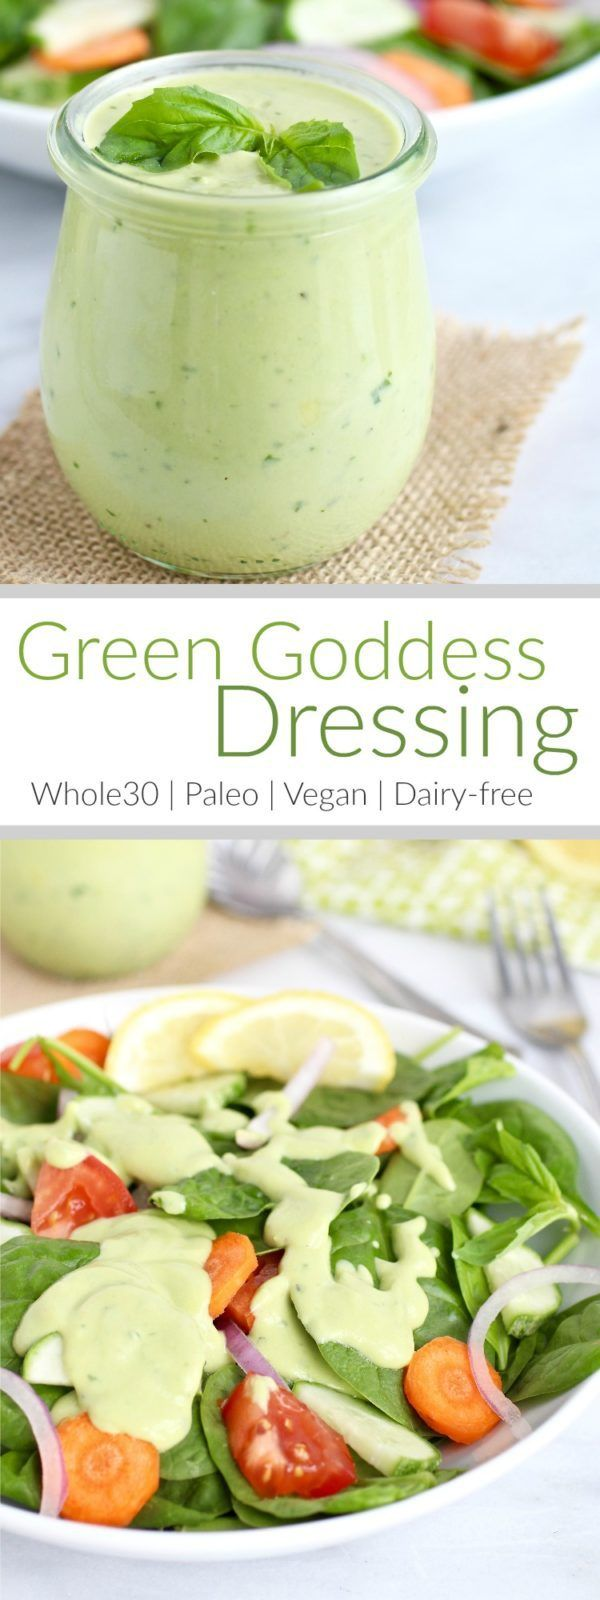 Made with just 6-ingredients, this Green Goddess Dressing is quick to make, full of flavor and will turn any boring salad into something sensational | Vegan dressing | Paleo dressing | Egg-free dressing | Dairy-free dressing | Whole30 dressing | healthy dressing || The Real Food Dietitians #healthydressing #whole30recipe #whole30dressing #vegandressing